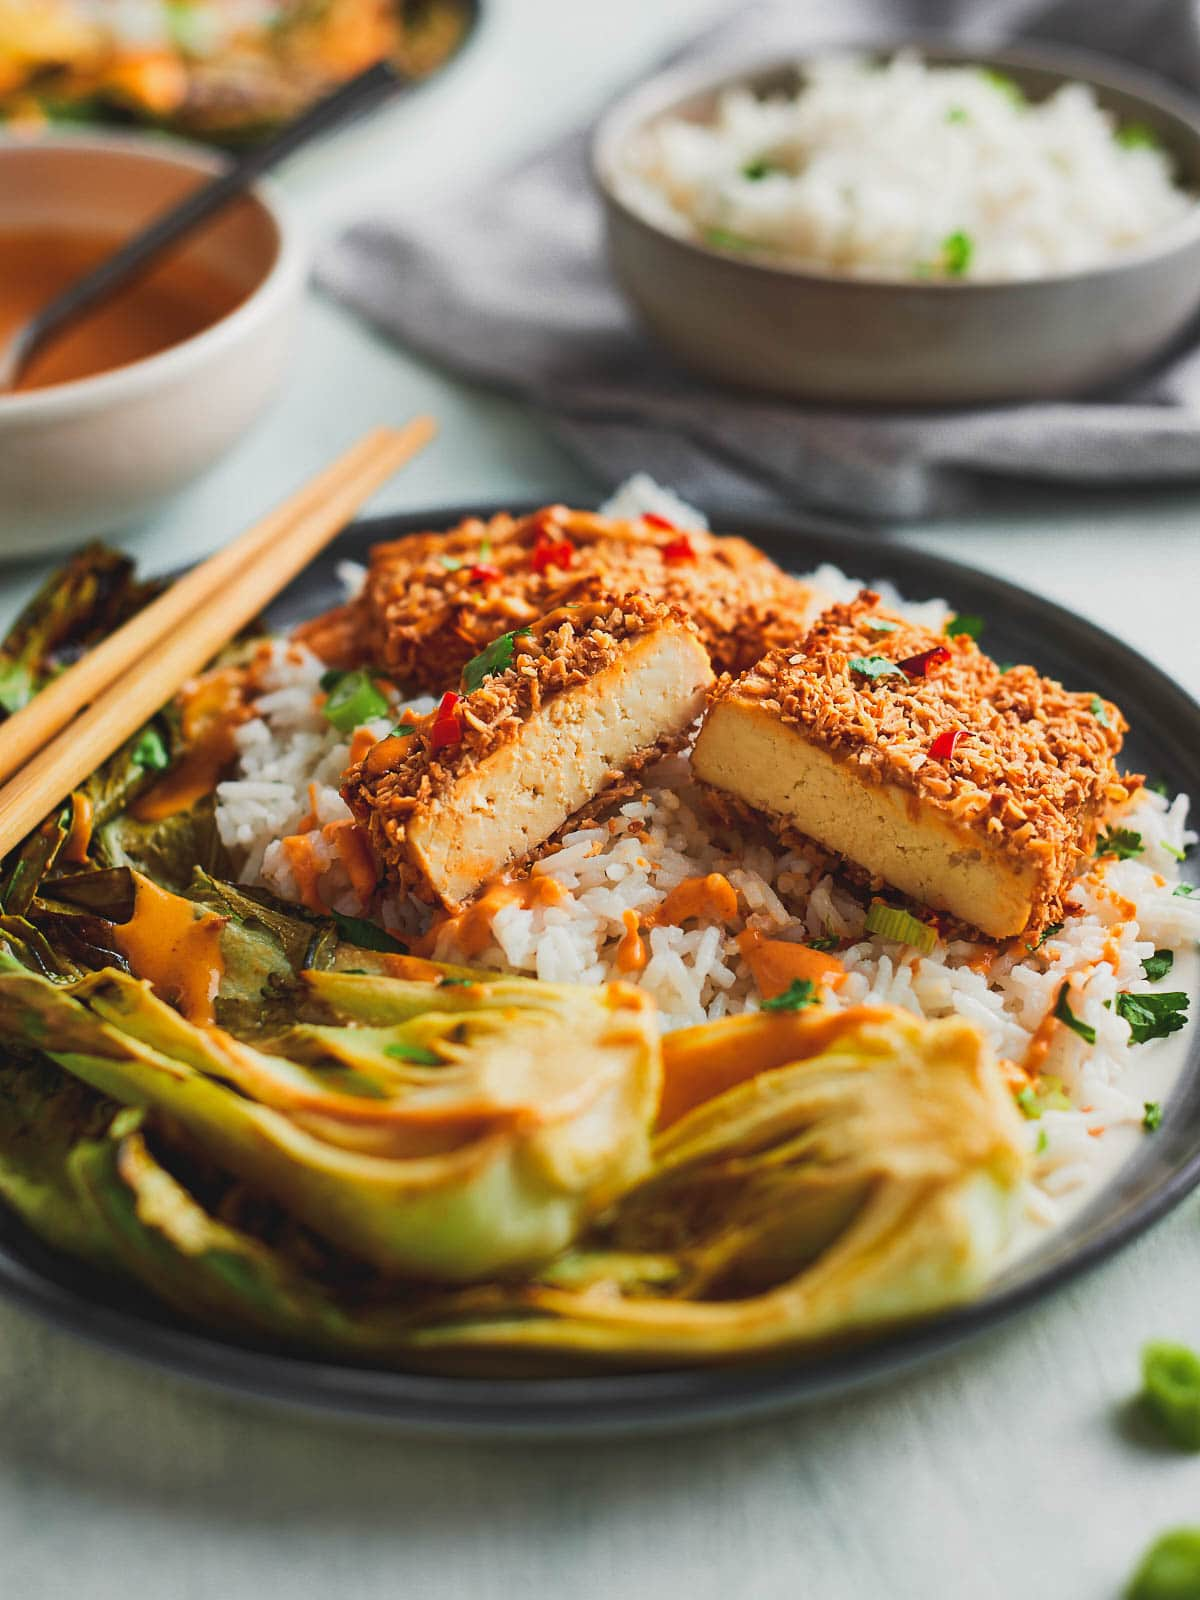 Photograph of coconut tofu on a bed of coconut rice with miso roasted pak choi